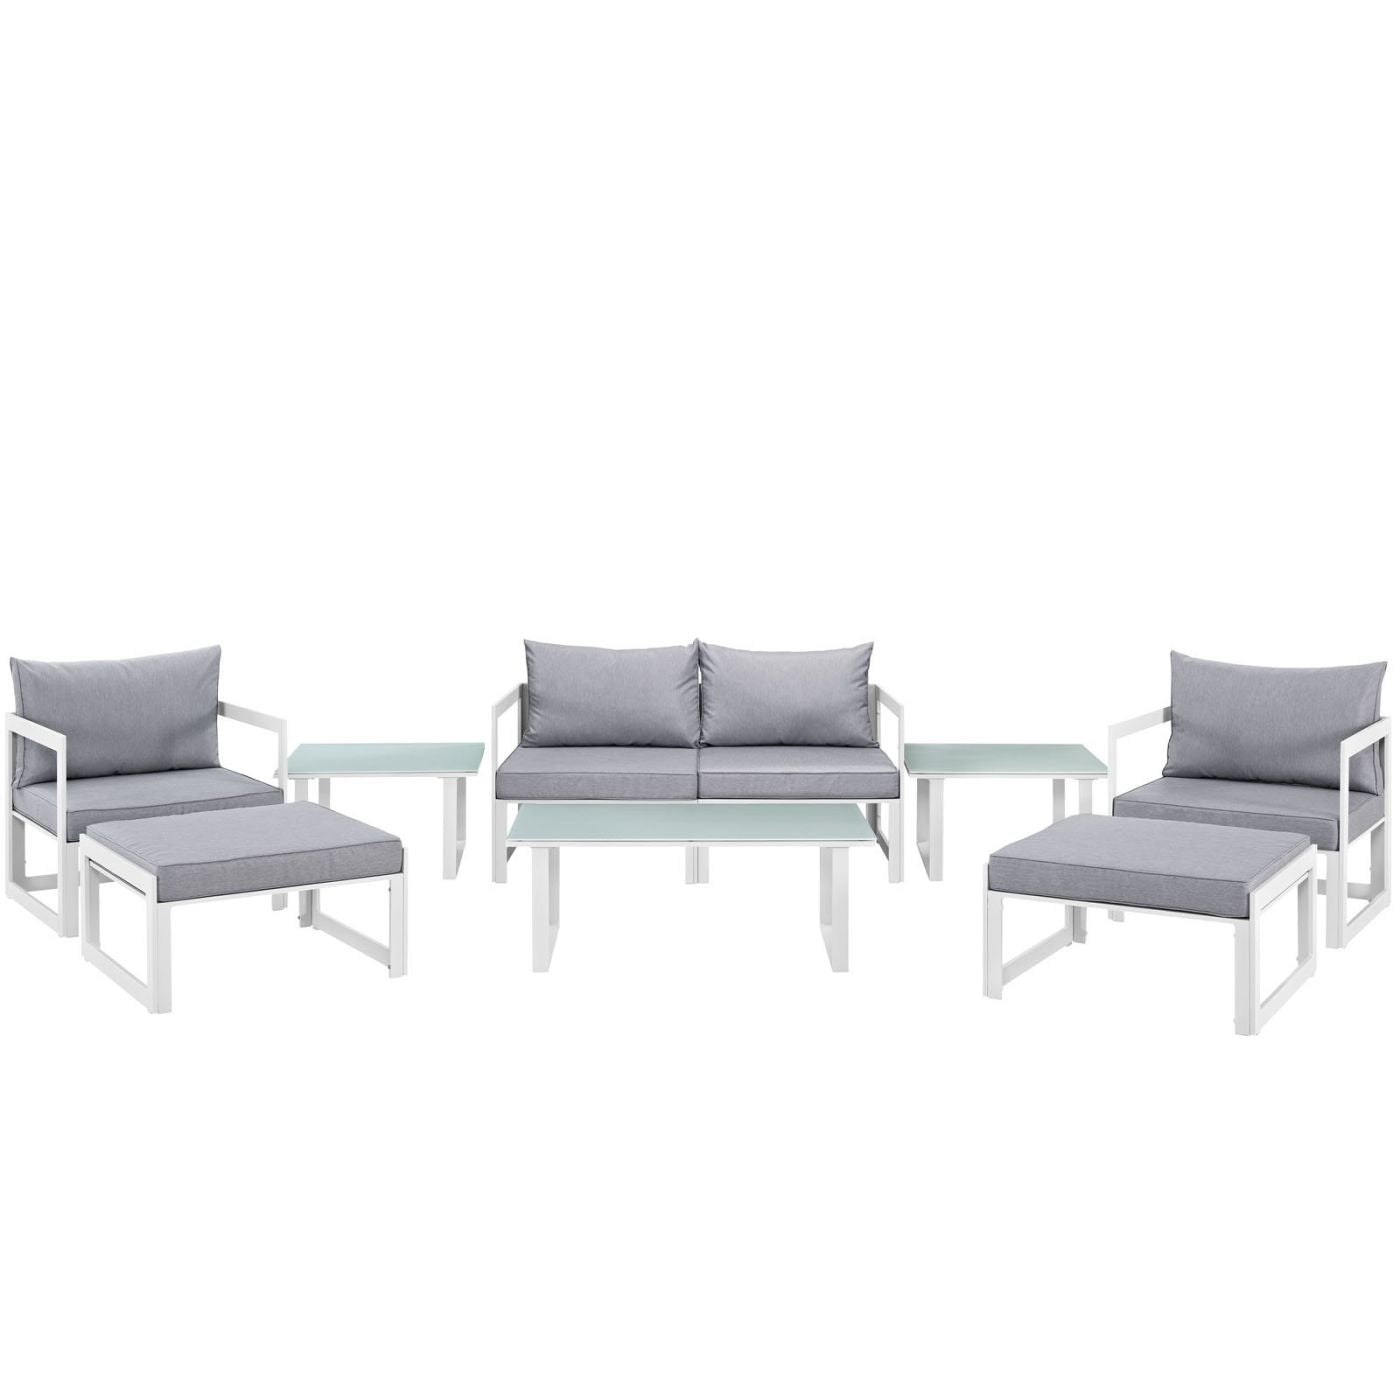 Astounding Modway Outdoor Patio Sets On Sale Eei 1719 Whi Gry Set Fortuna 9 Piece Outdoor Patio Sectional Sofa Set Only Only 1 754 80 At Contemporary Furniture Short Links Chair Design For Home Short Linksinfo